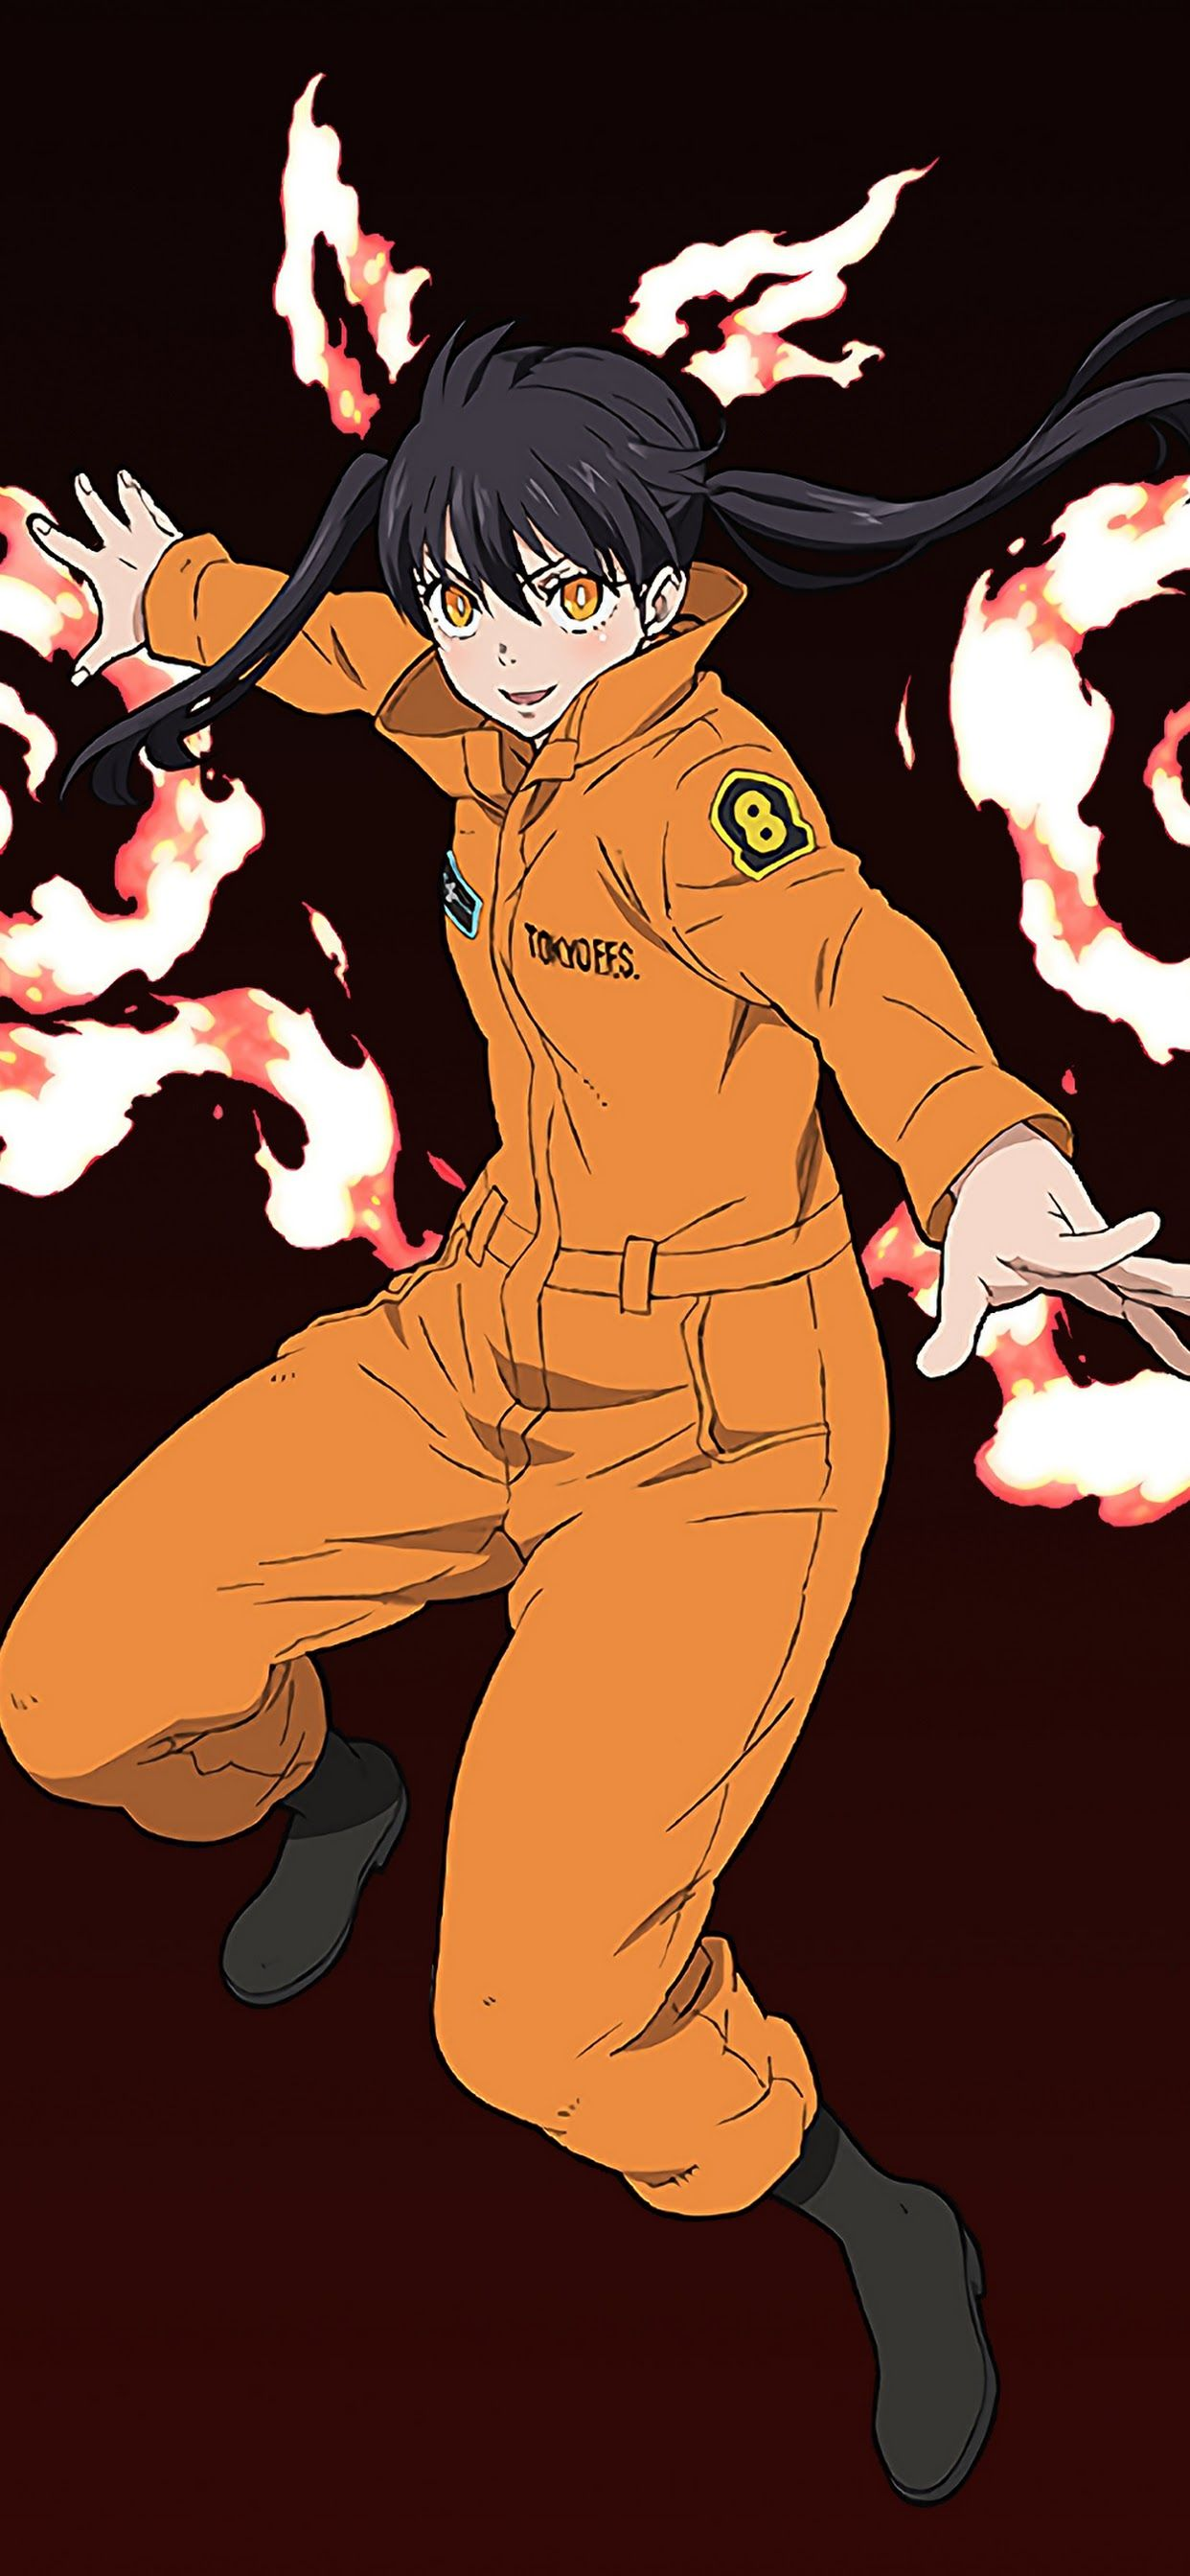 Fire Force Iphone 11 Wallpapers Wallpaper Cave Select your favorite images and download them for use as wallpaper for your desktop or phone. fire force iphone 11 wallpapers